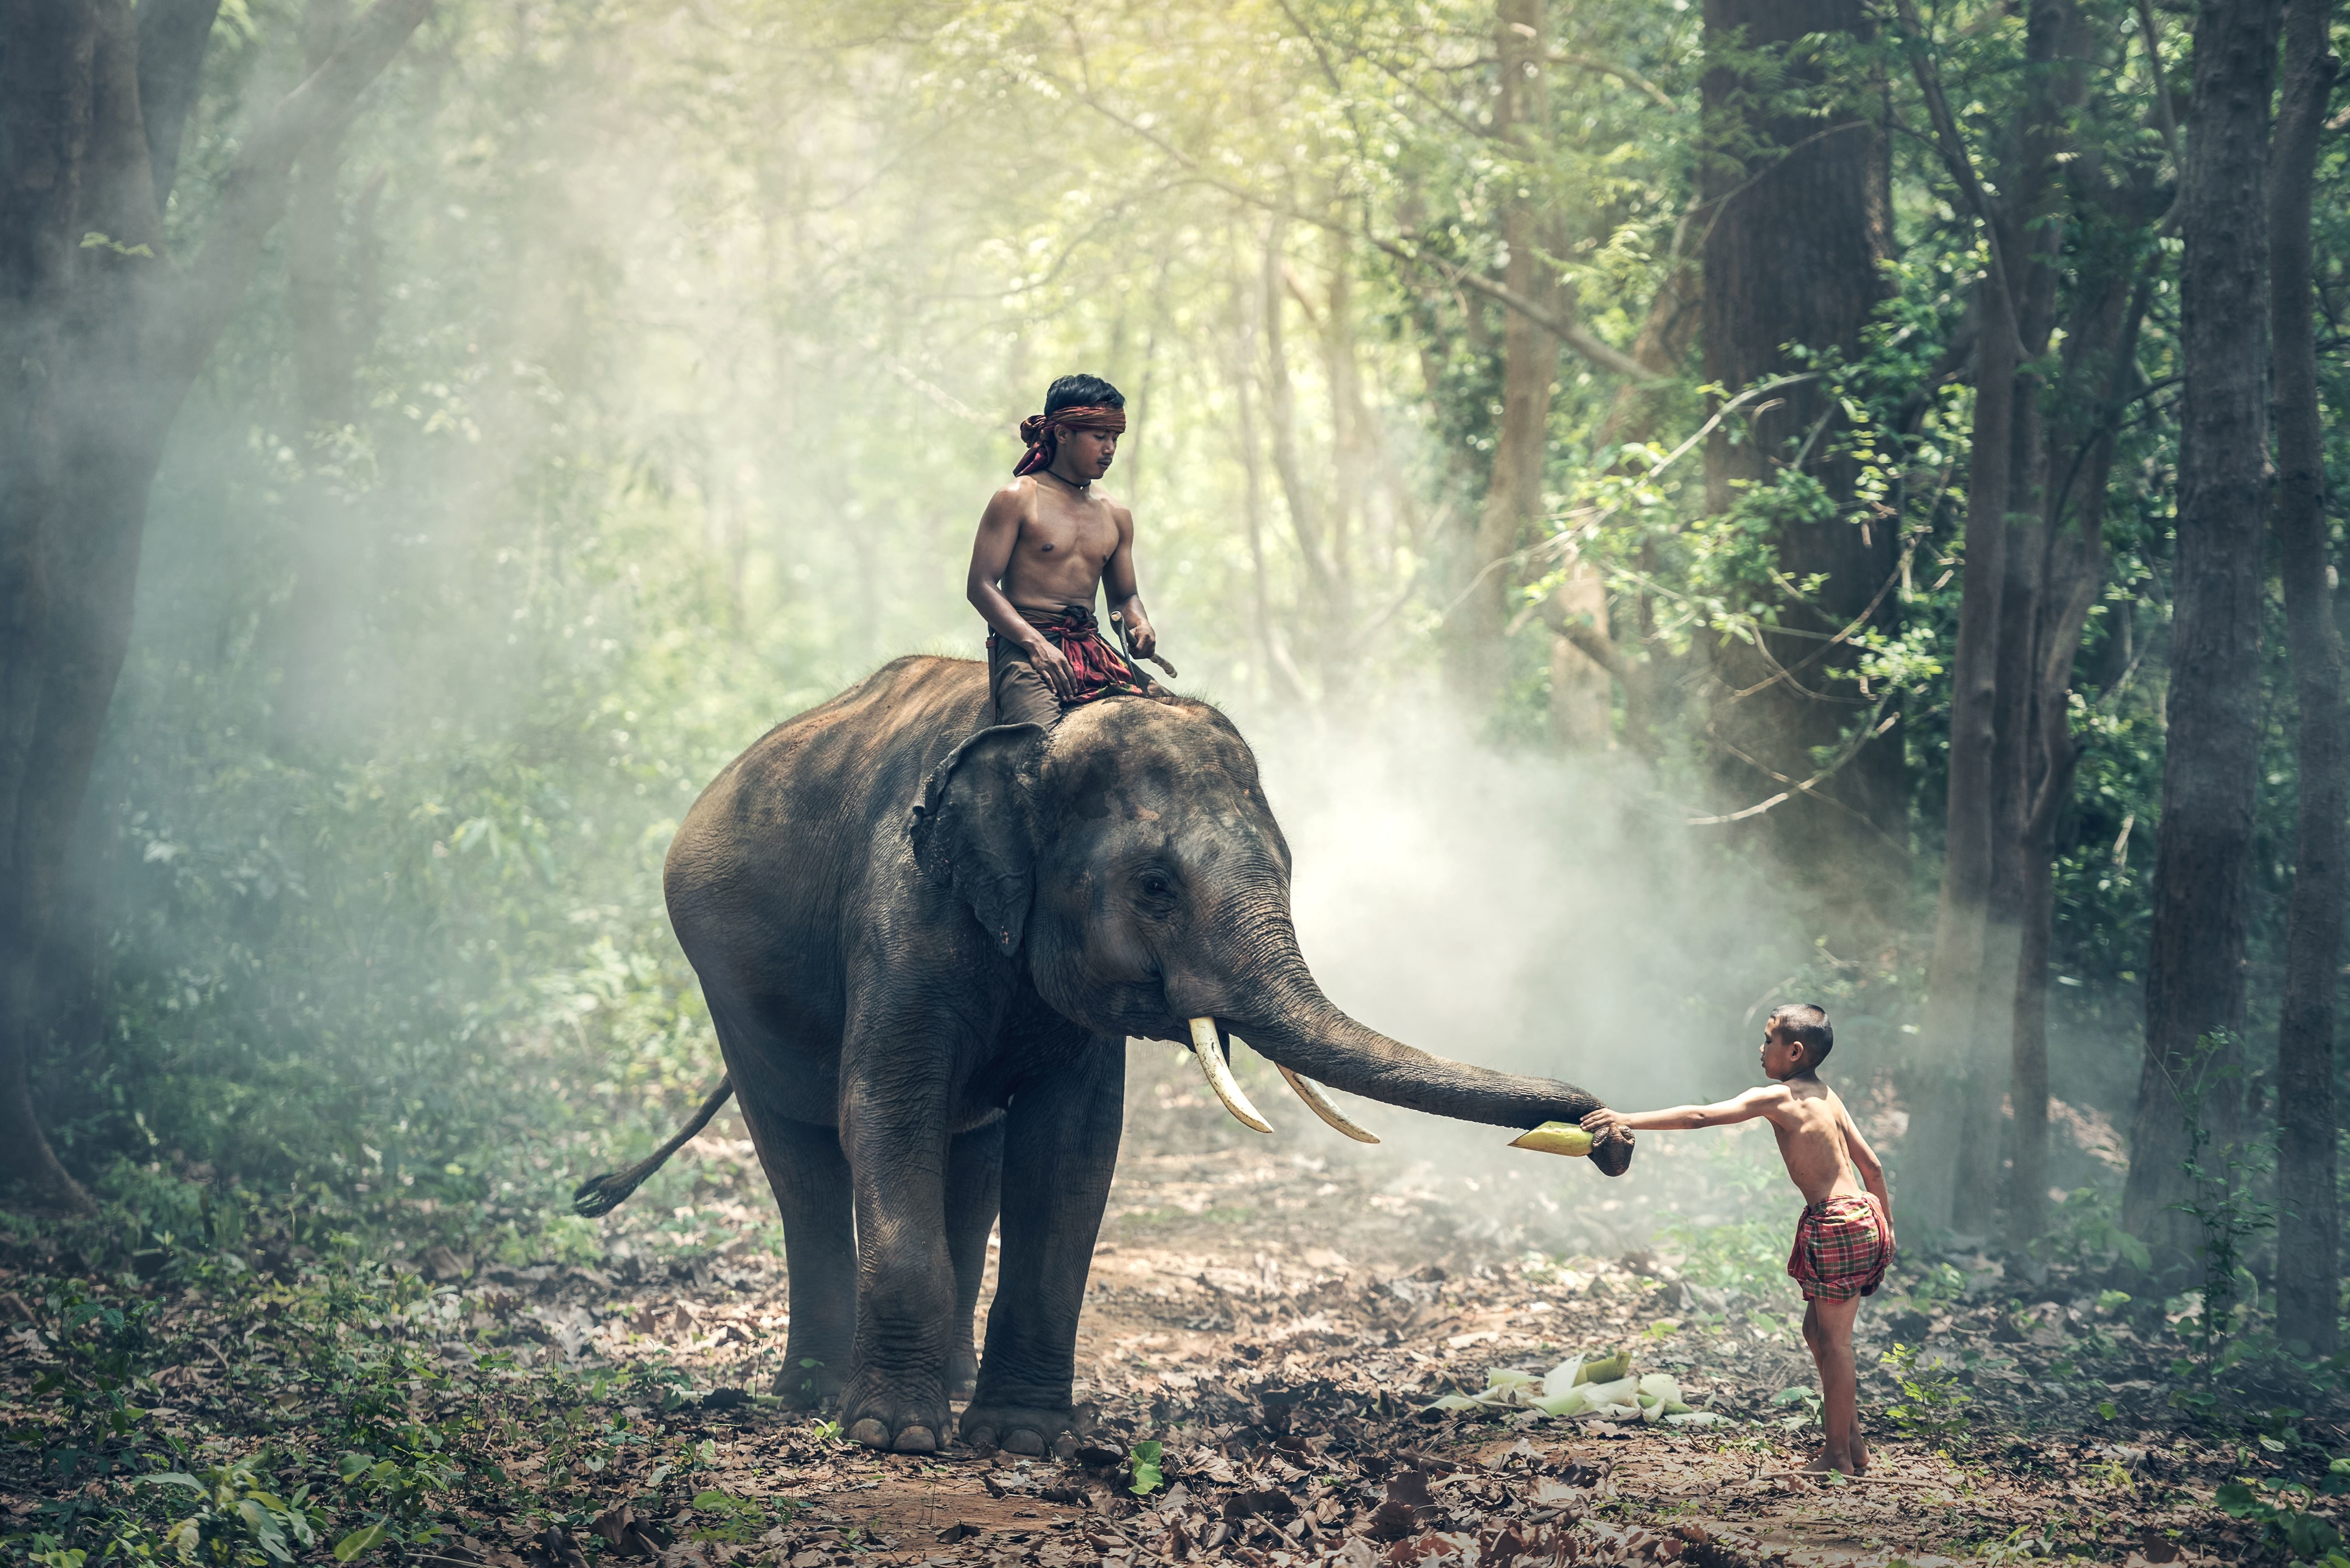 Girl Couple Wallpaper Free Picture Elephant People Forest Sunlight Travel Tree